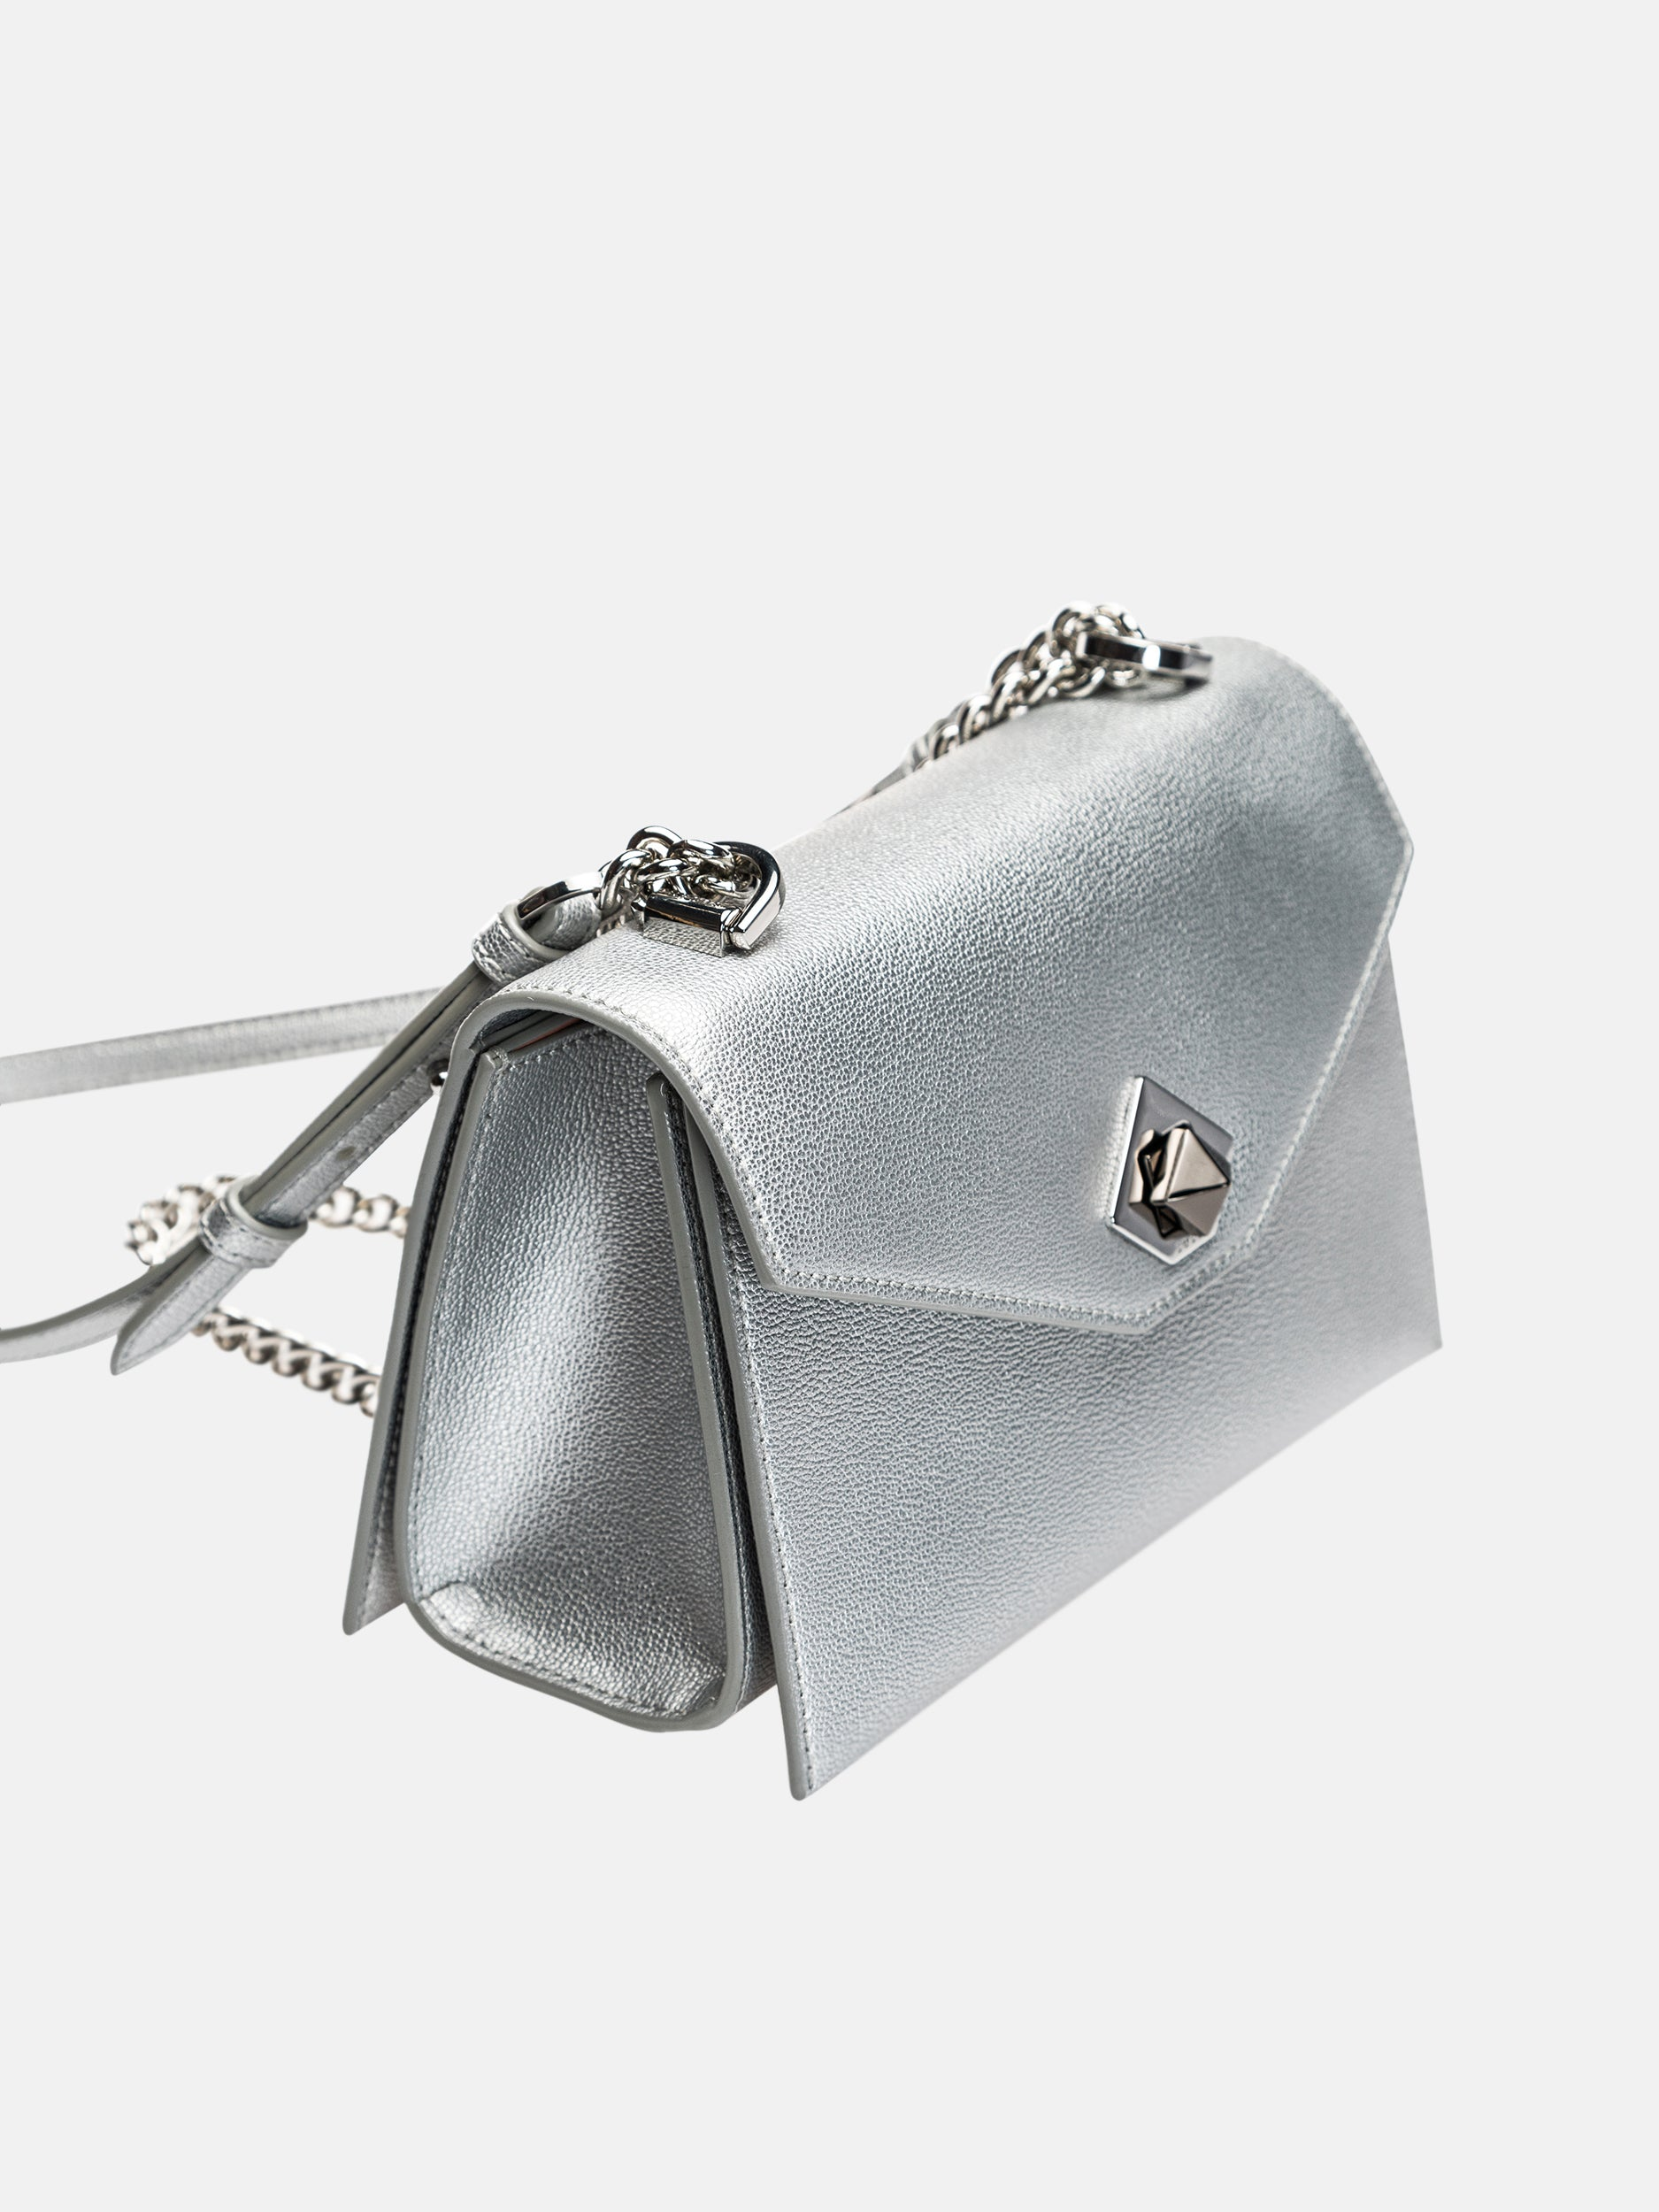 Black Diamond Flip Baguette Bag - Silvery